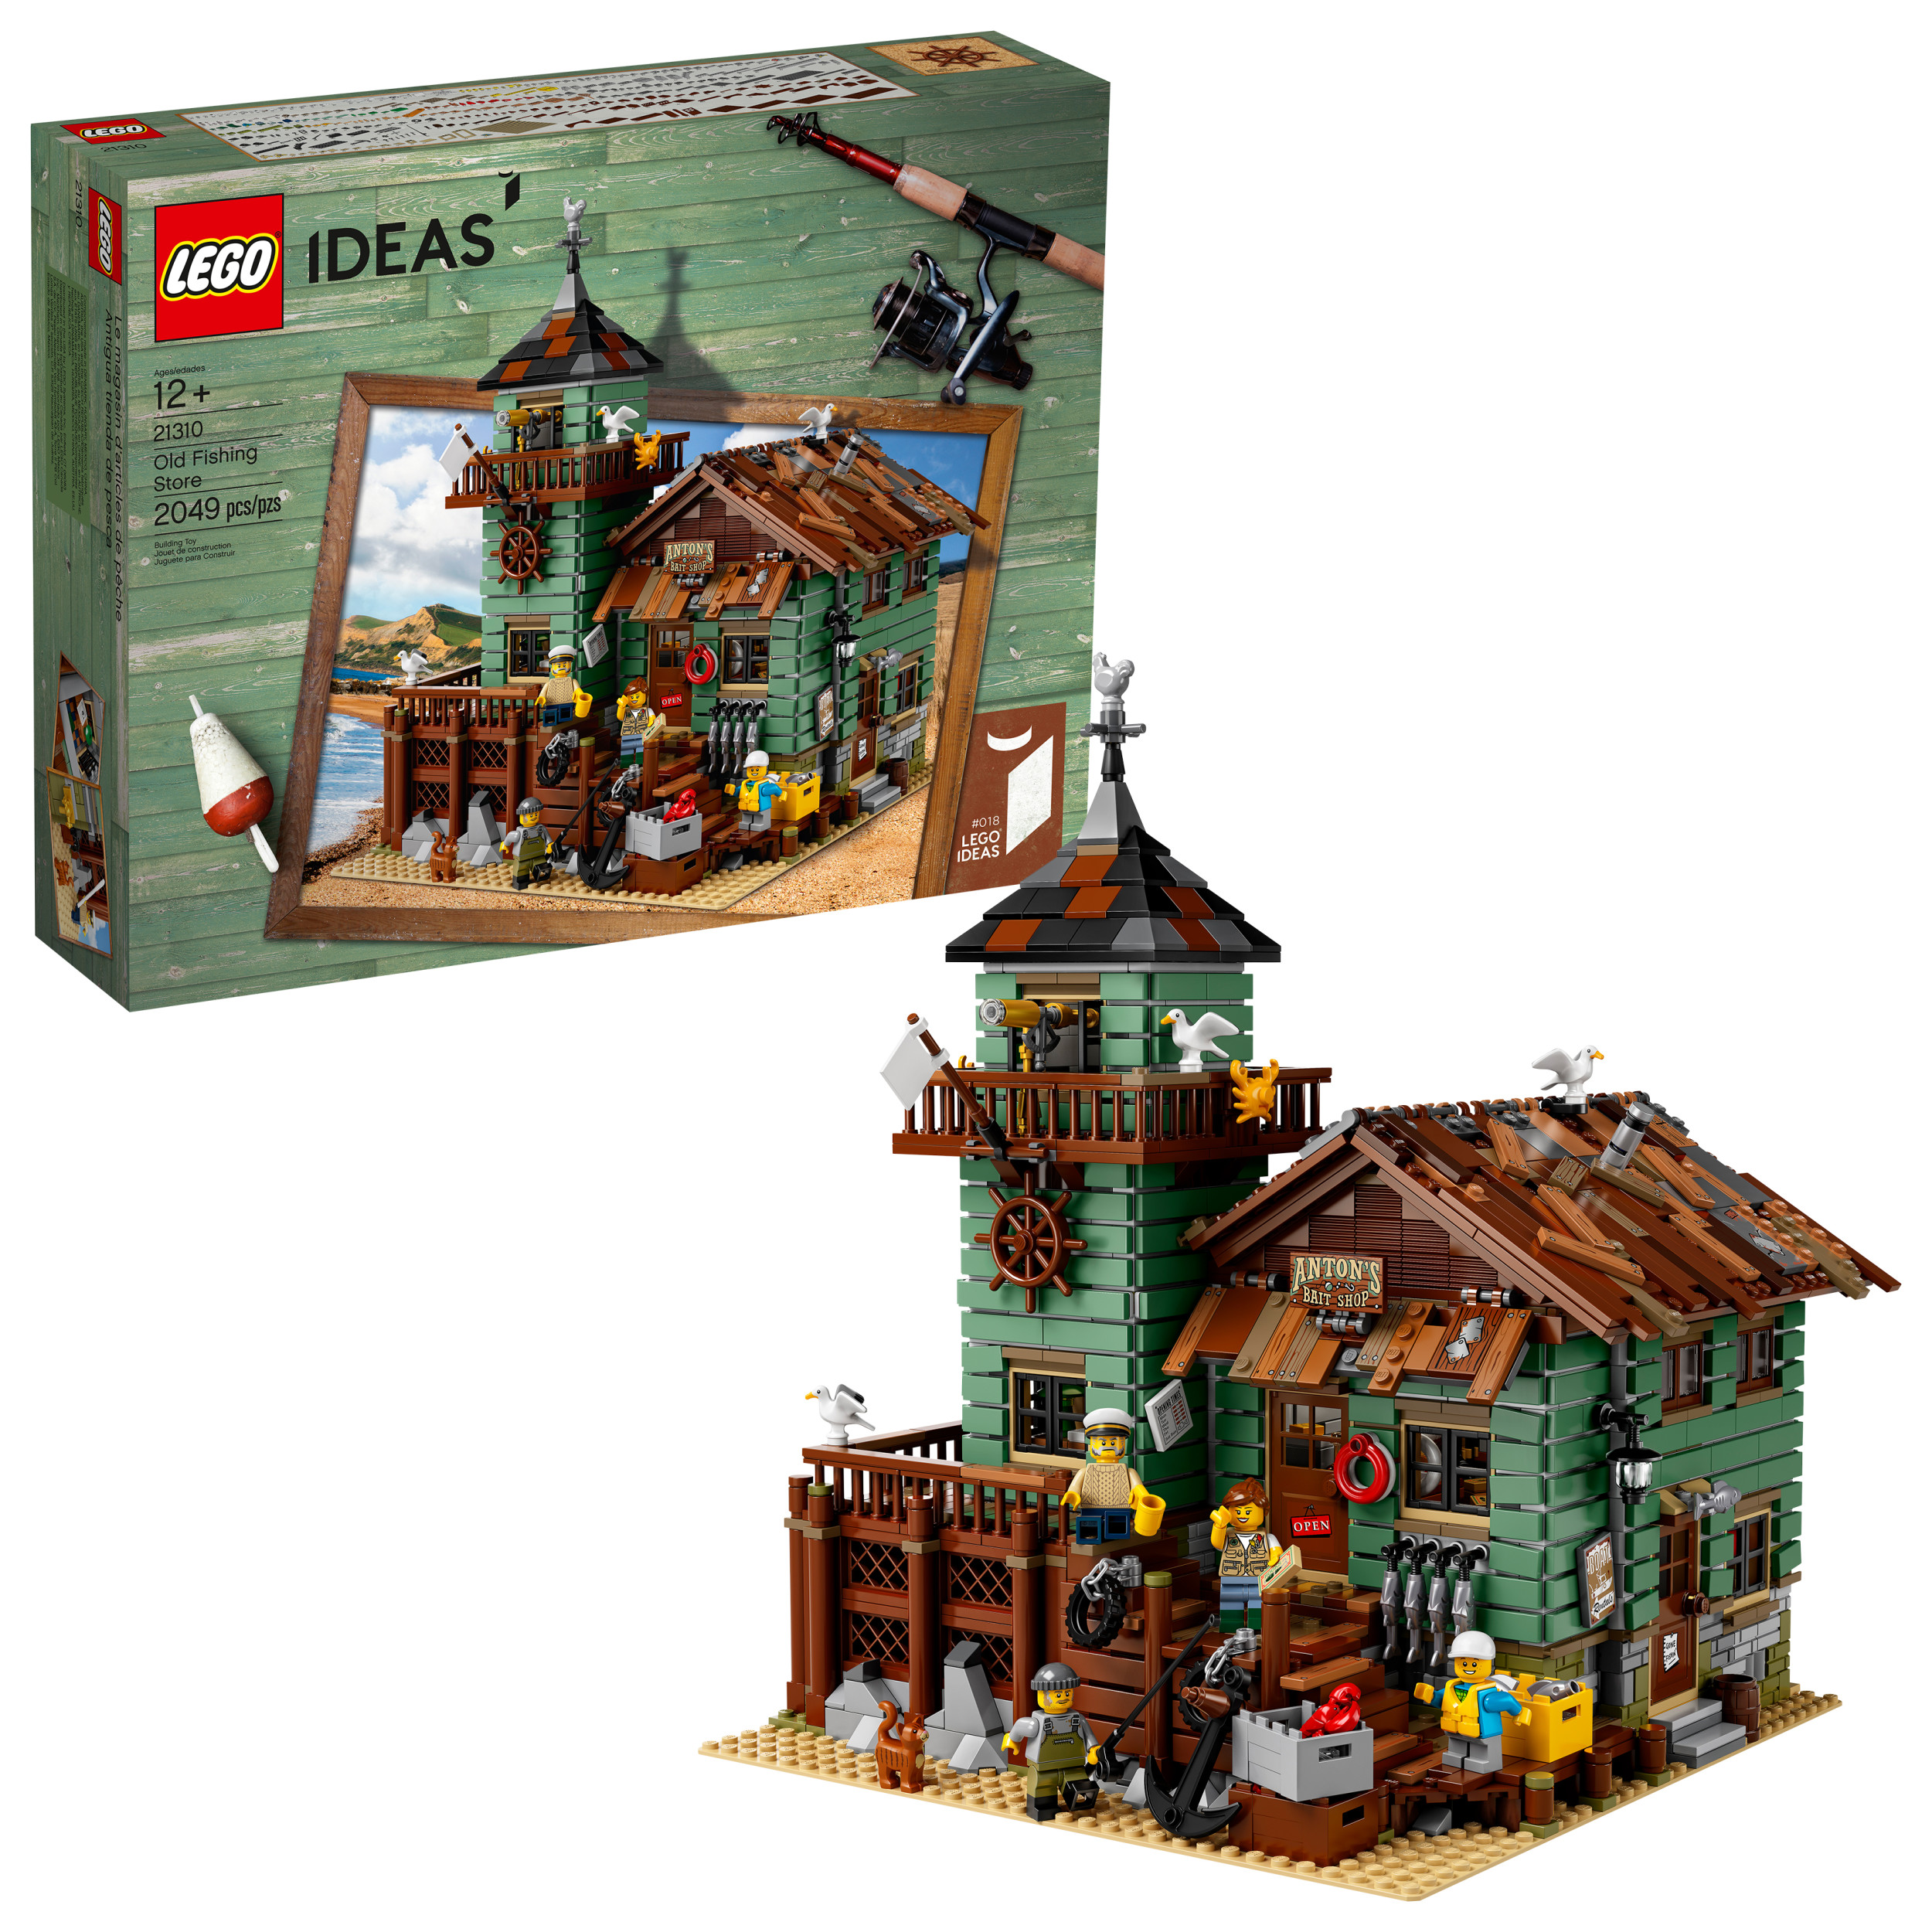 Lego Ideas Old Fishing Store 21310 by LEGO System Inc